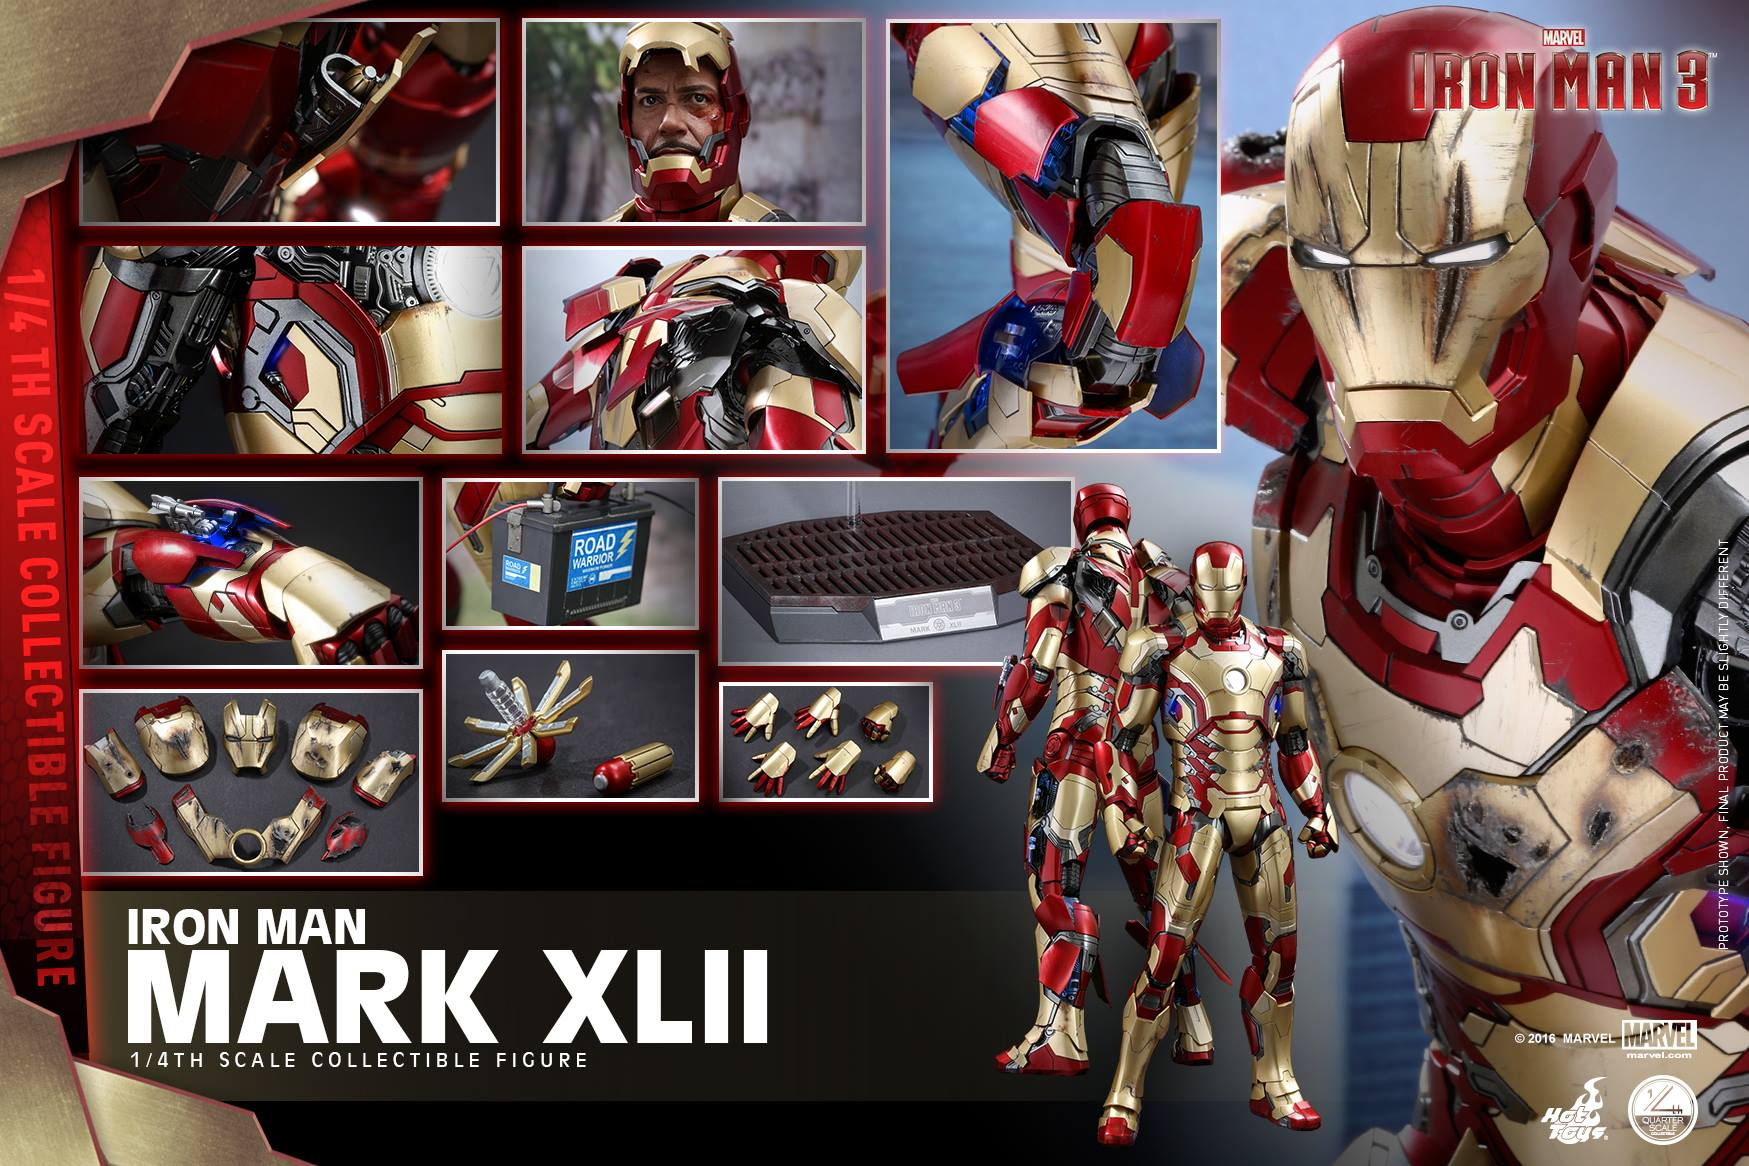 Hot Toys Quarter Scale Iron Man Mark 42 - Toy Discussion at